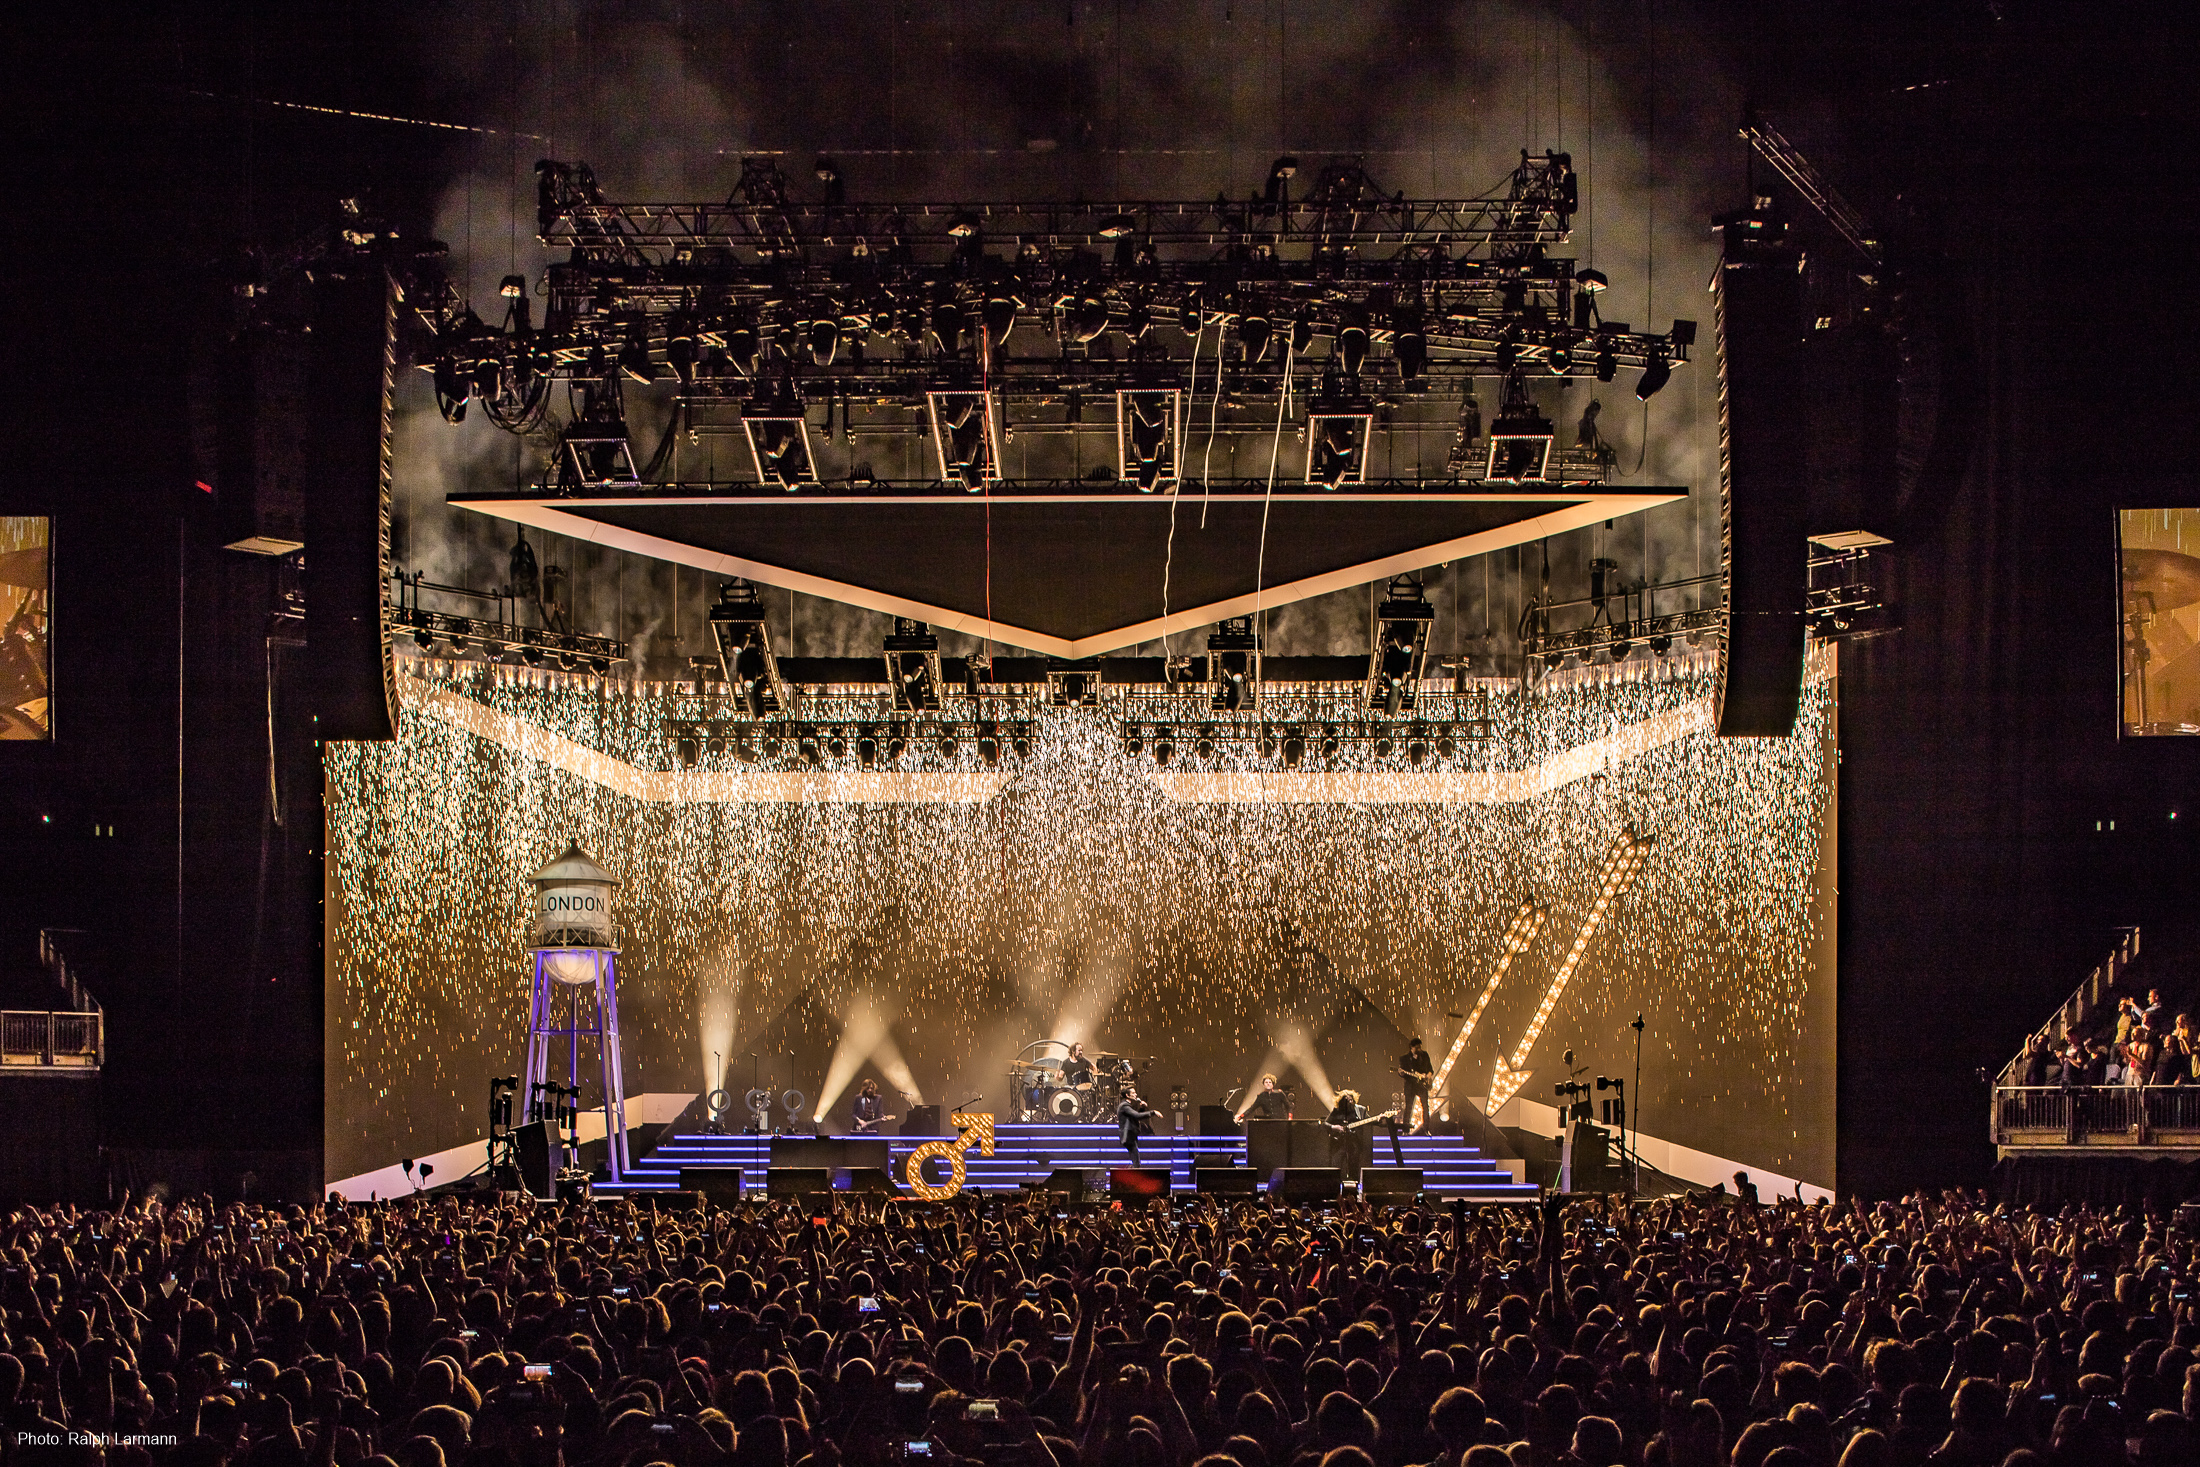 0333_LR-Final-Selection_THE-KILLERS-live